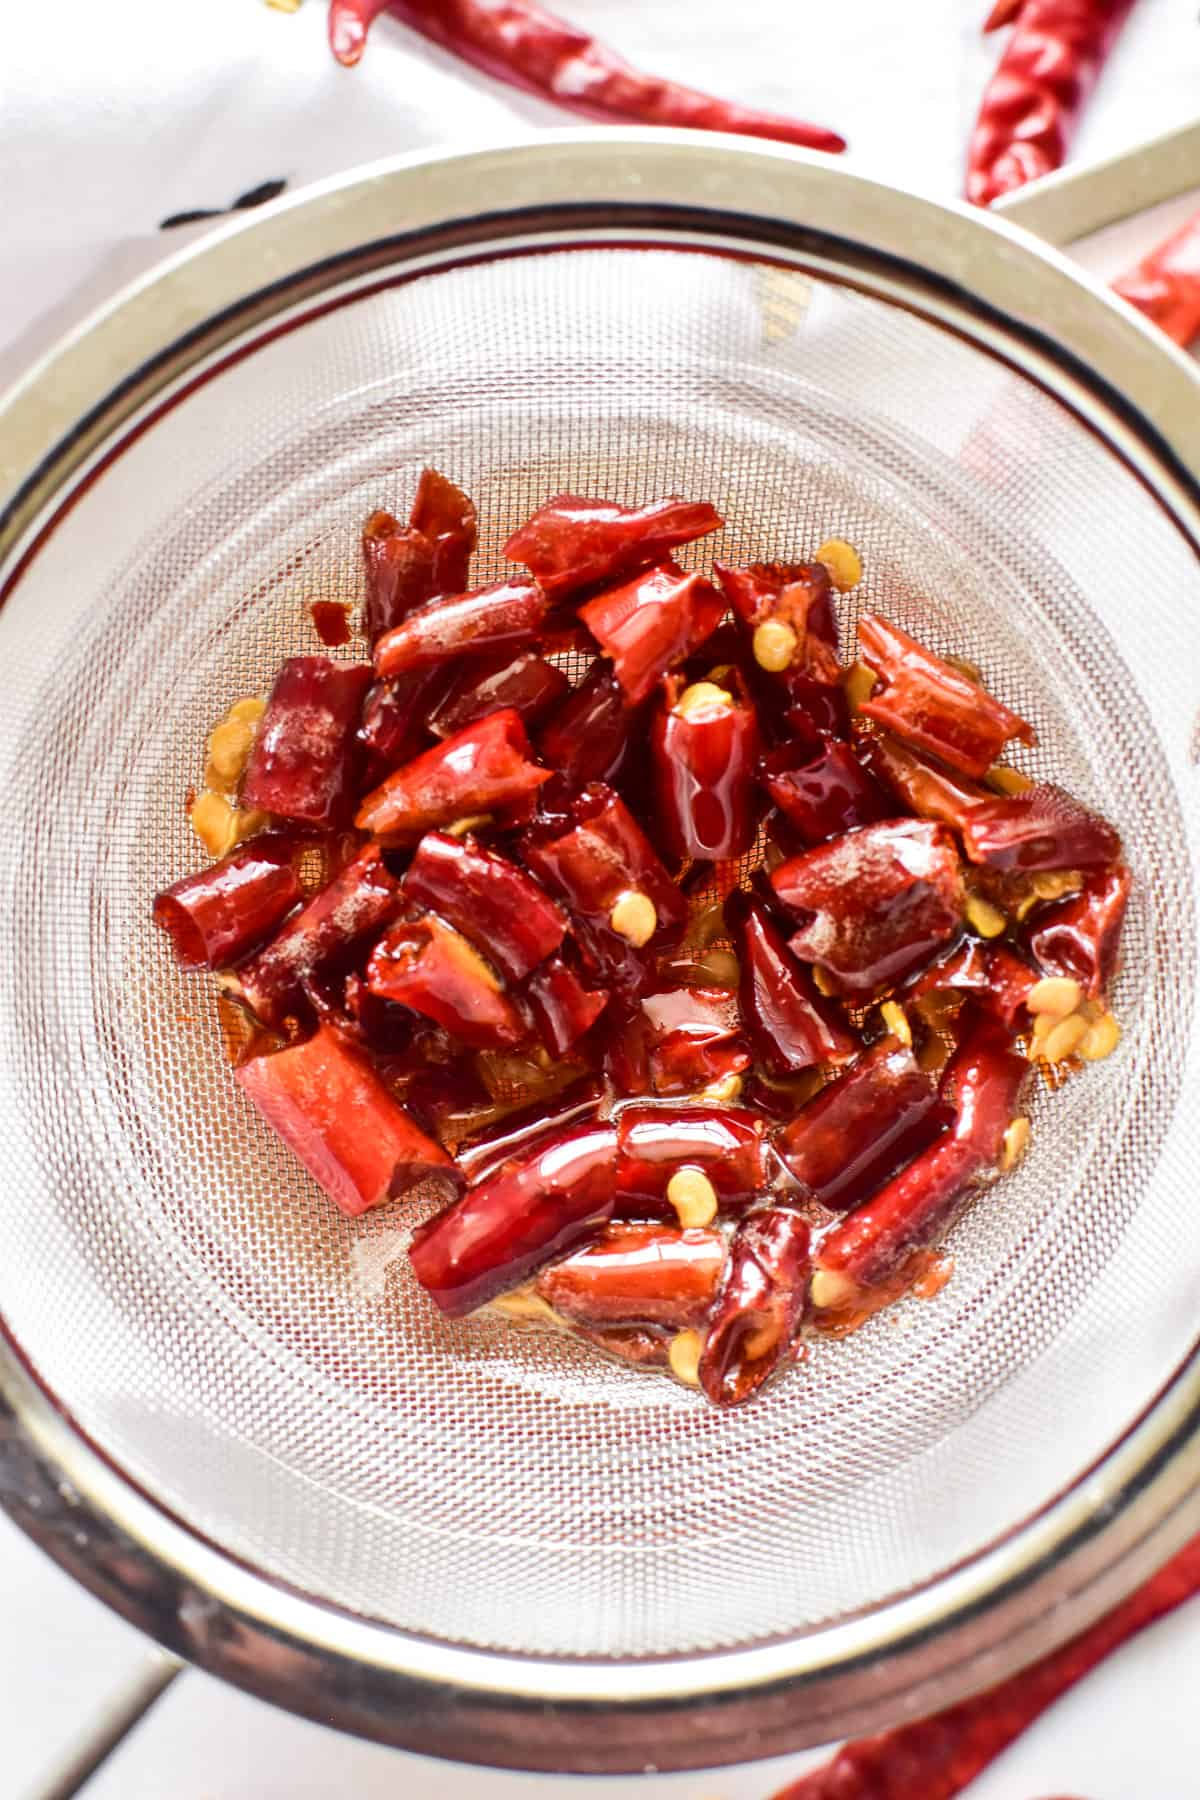 Overhead image of chopped chili peppers being strained from hot honey